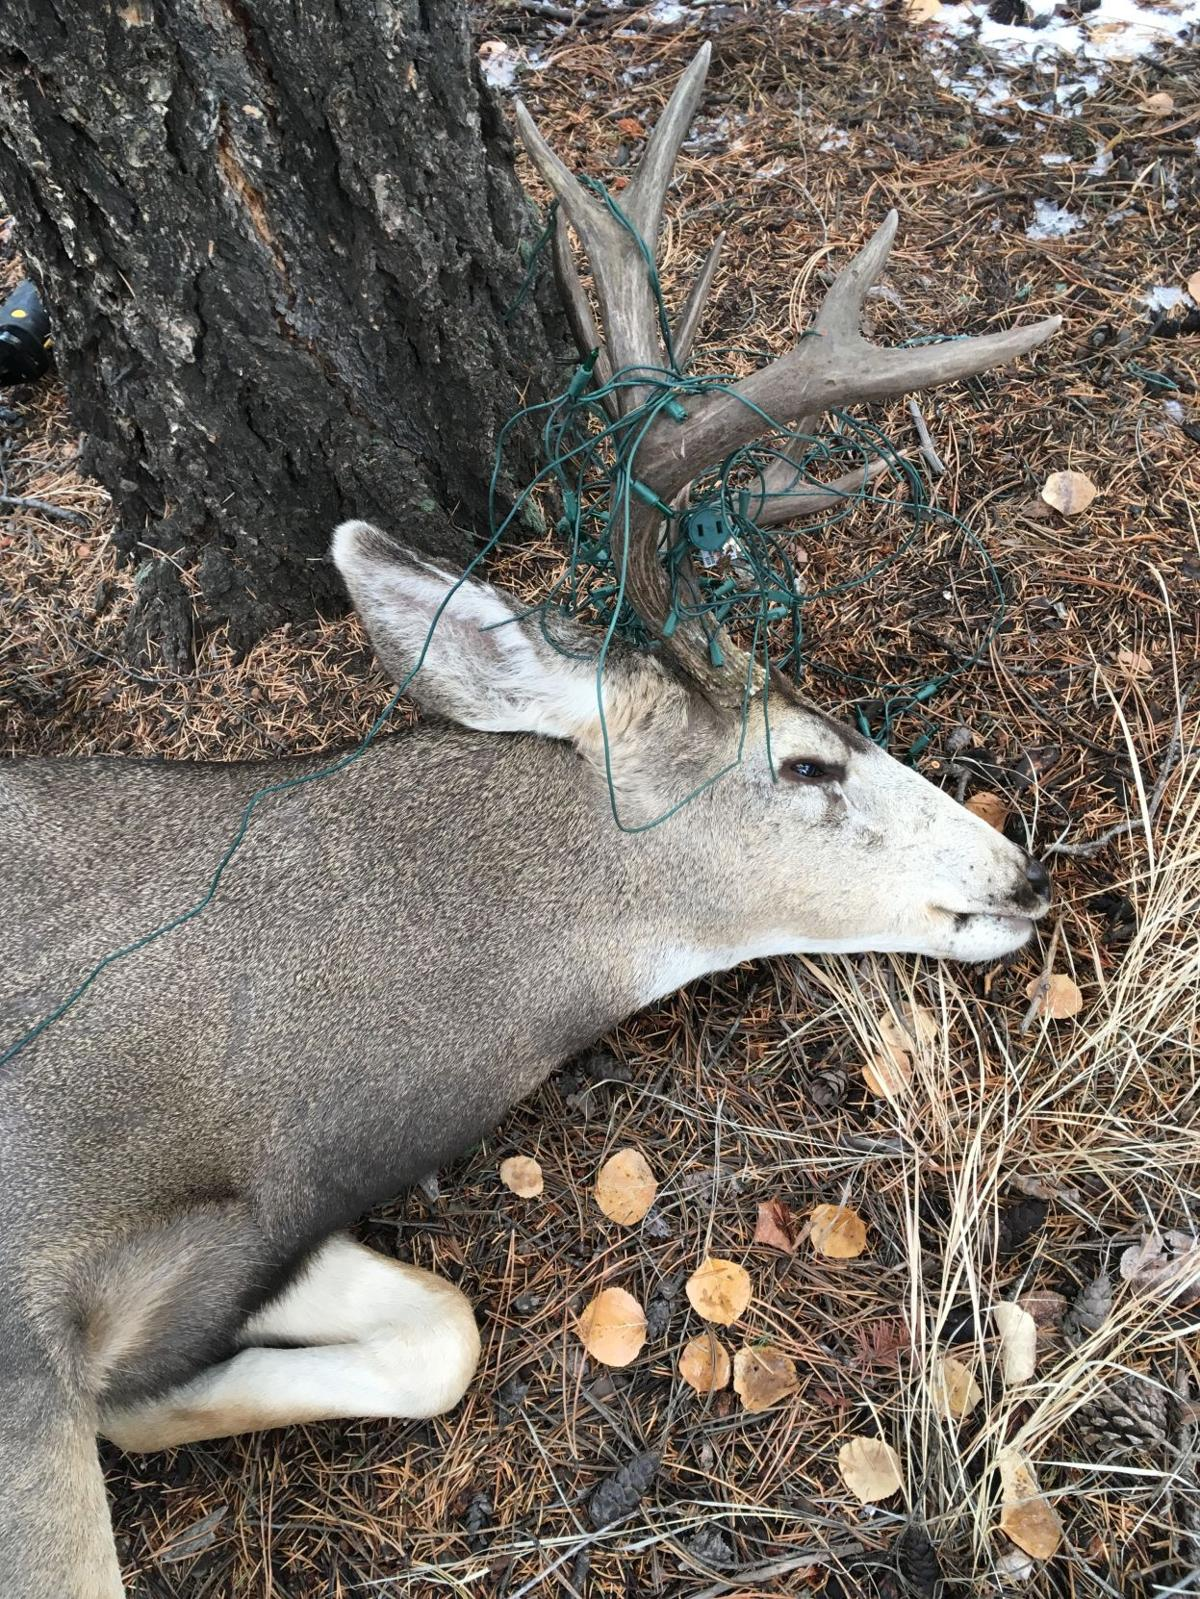 Christmas Decorations Outdoor.Wildlife Officials Warn Residents Outdoor Christmas